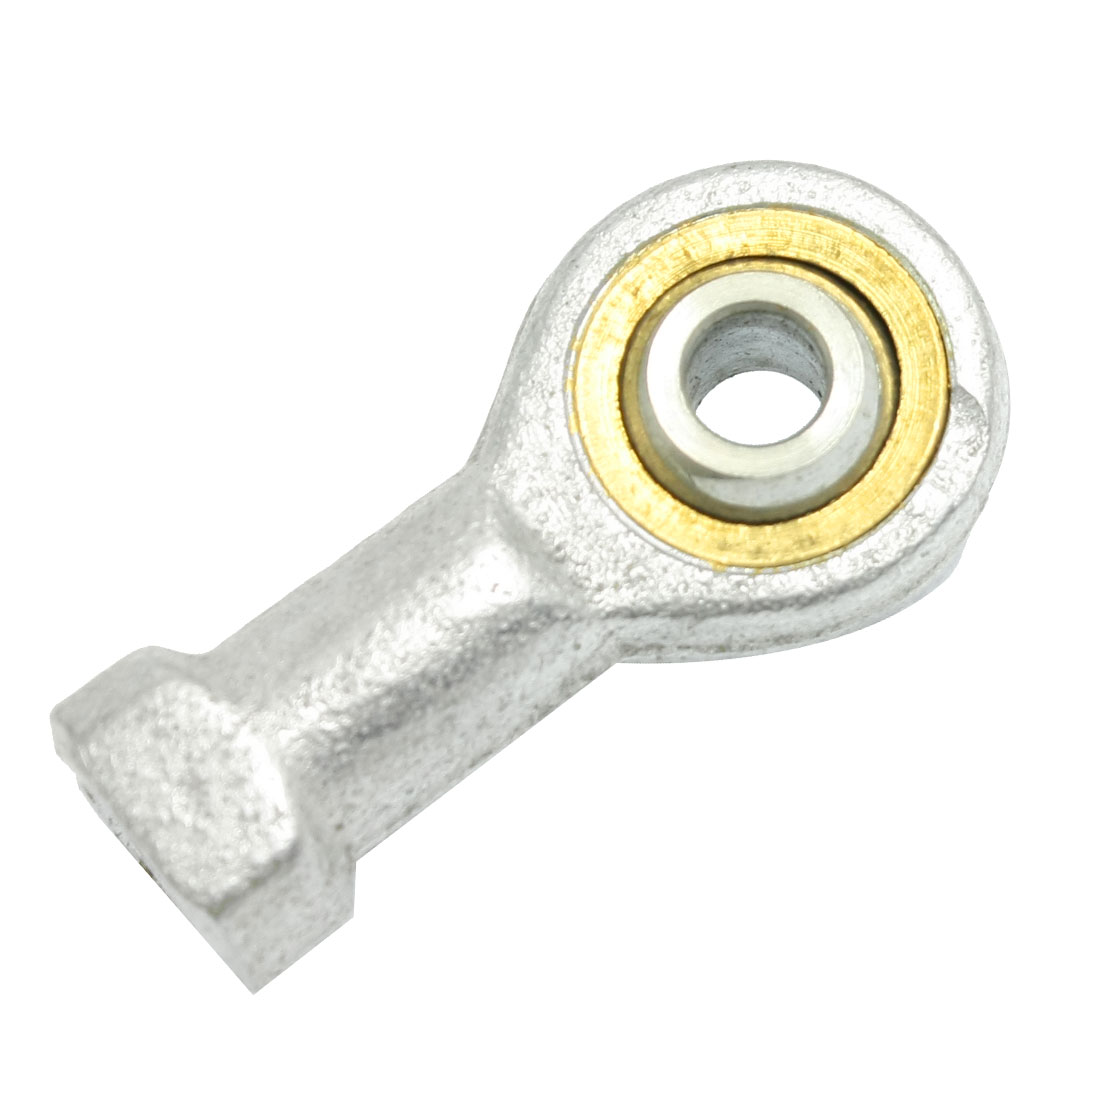 Female Connector Self-lubricating Rod End Bearring SZ5 T/K for Light Machinery